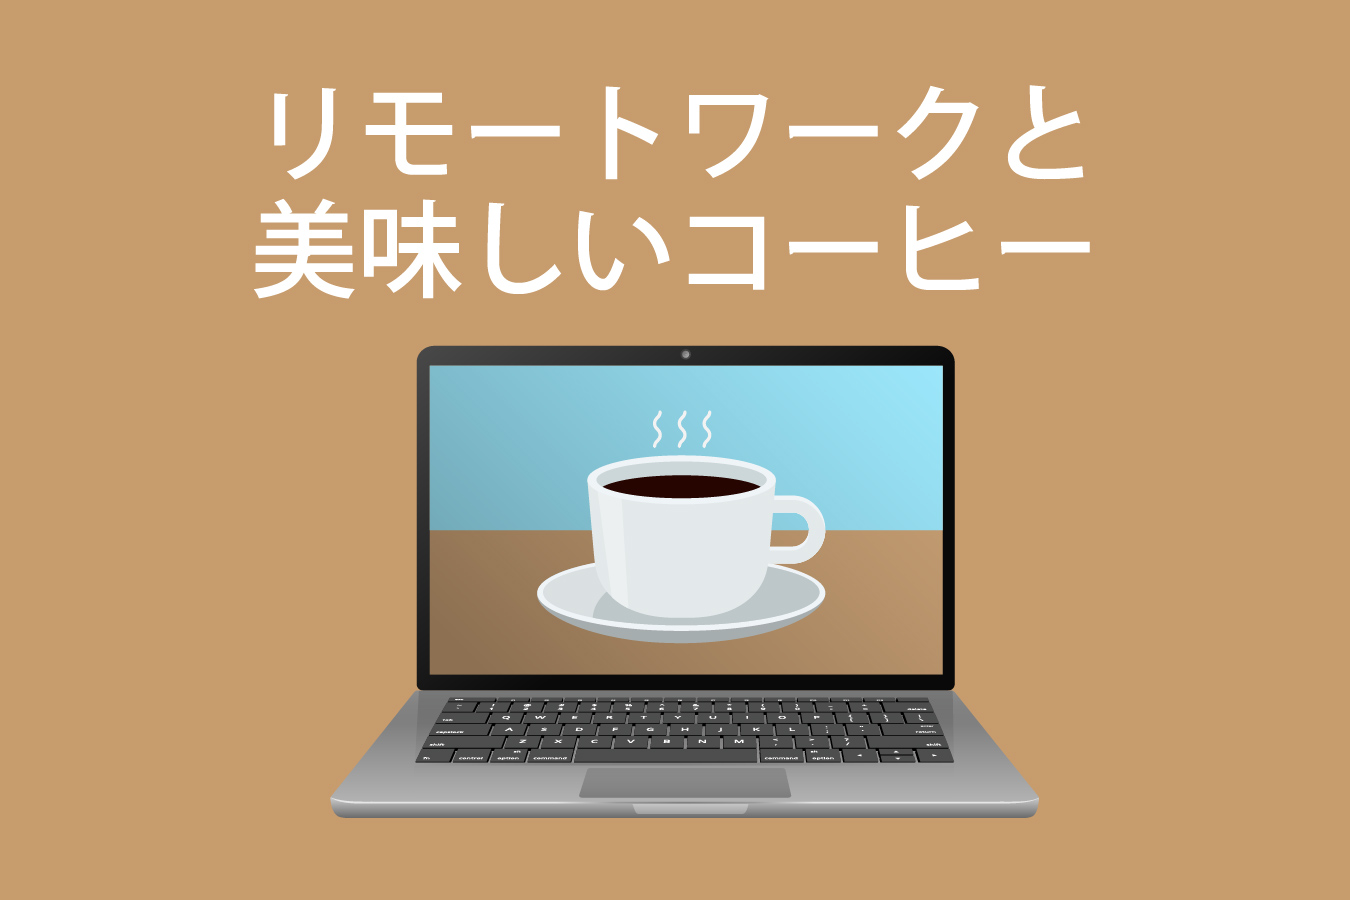 For remote work! Why don't you buy some good coffee beans and have a cafe at home?